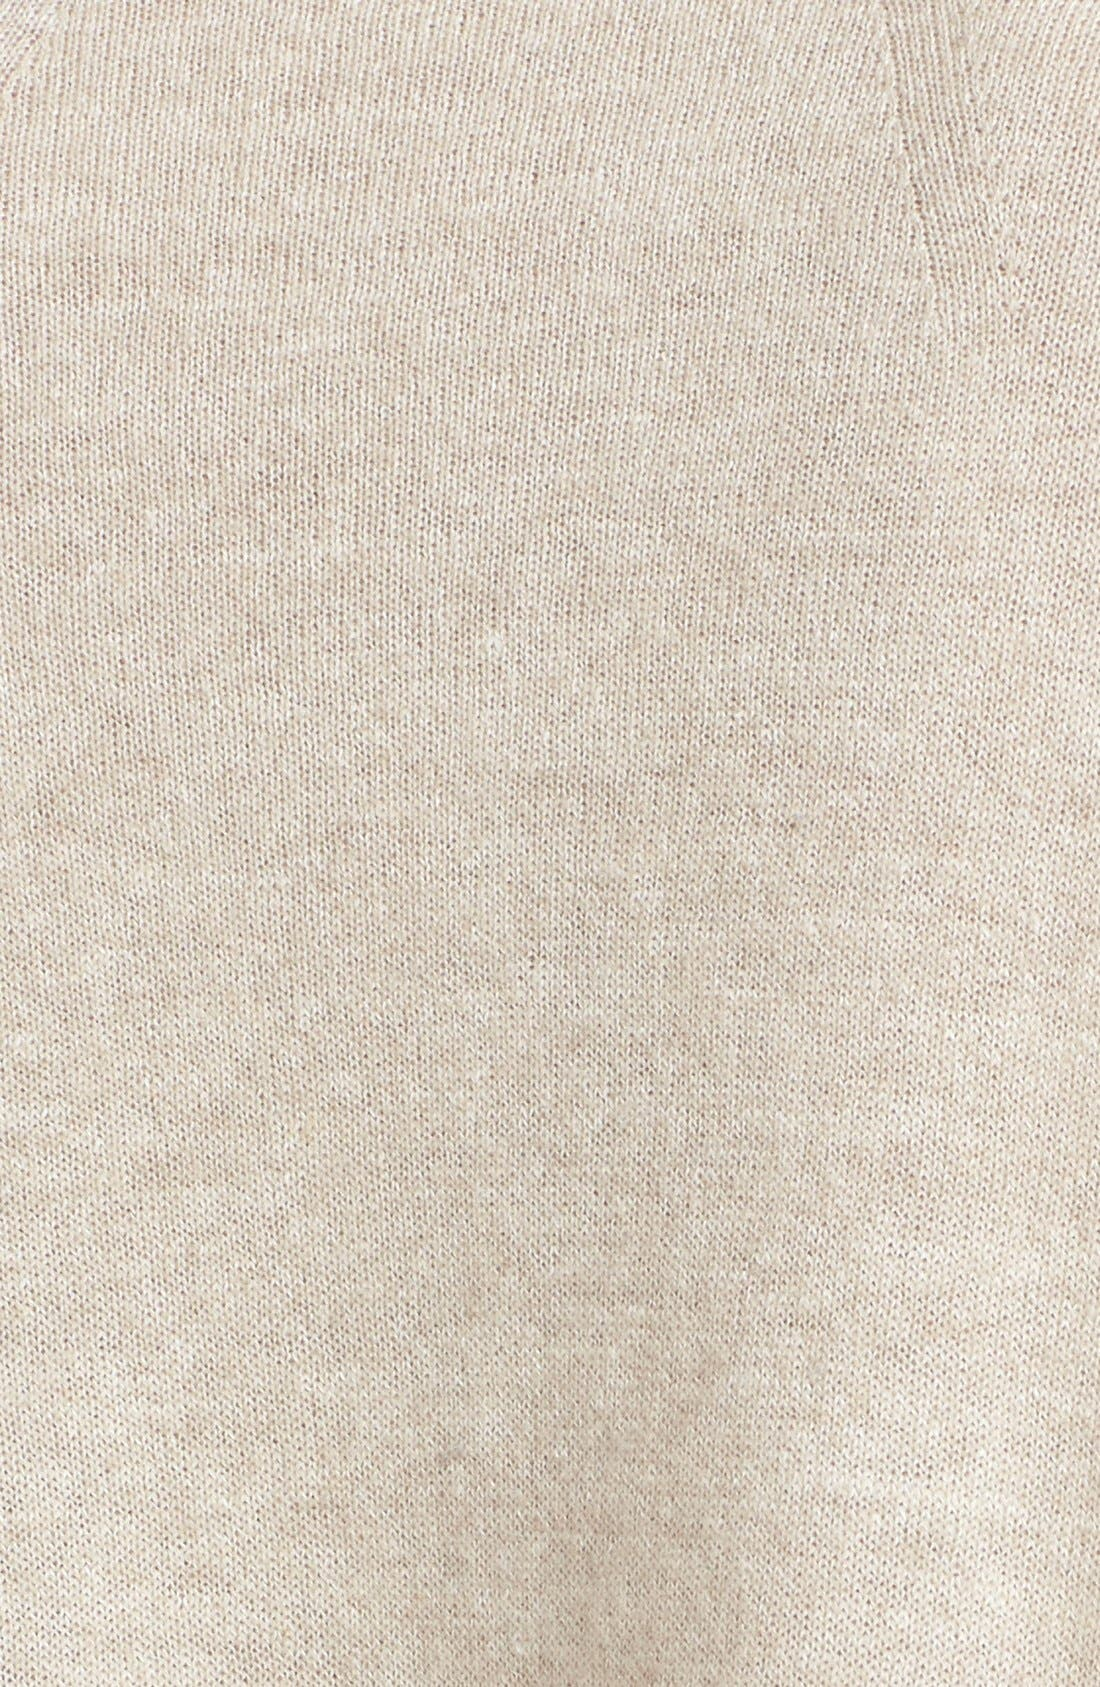 Linen & Cashmere Pullover,                             Alternate thumbnail 5, color,                             Heather Tan